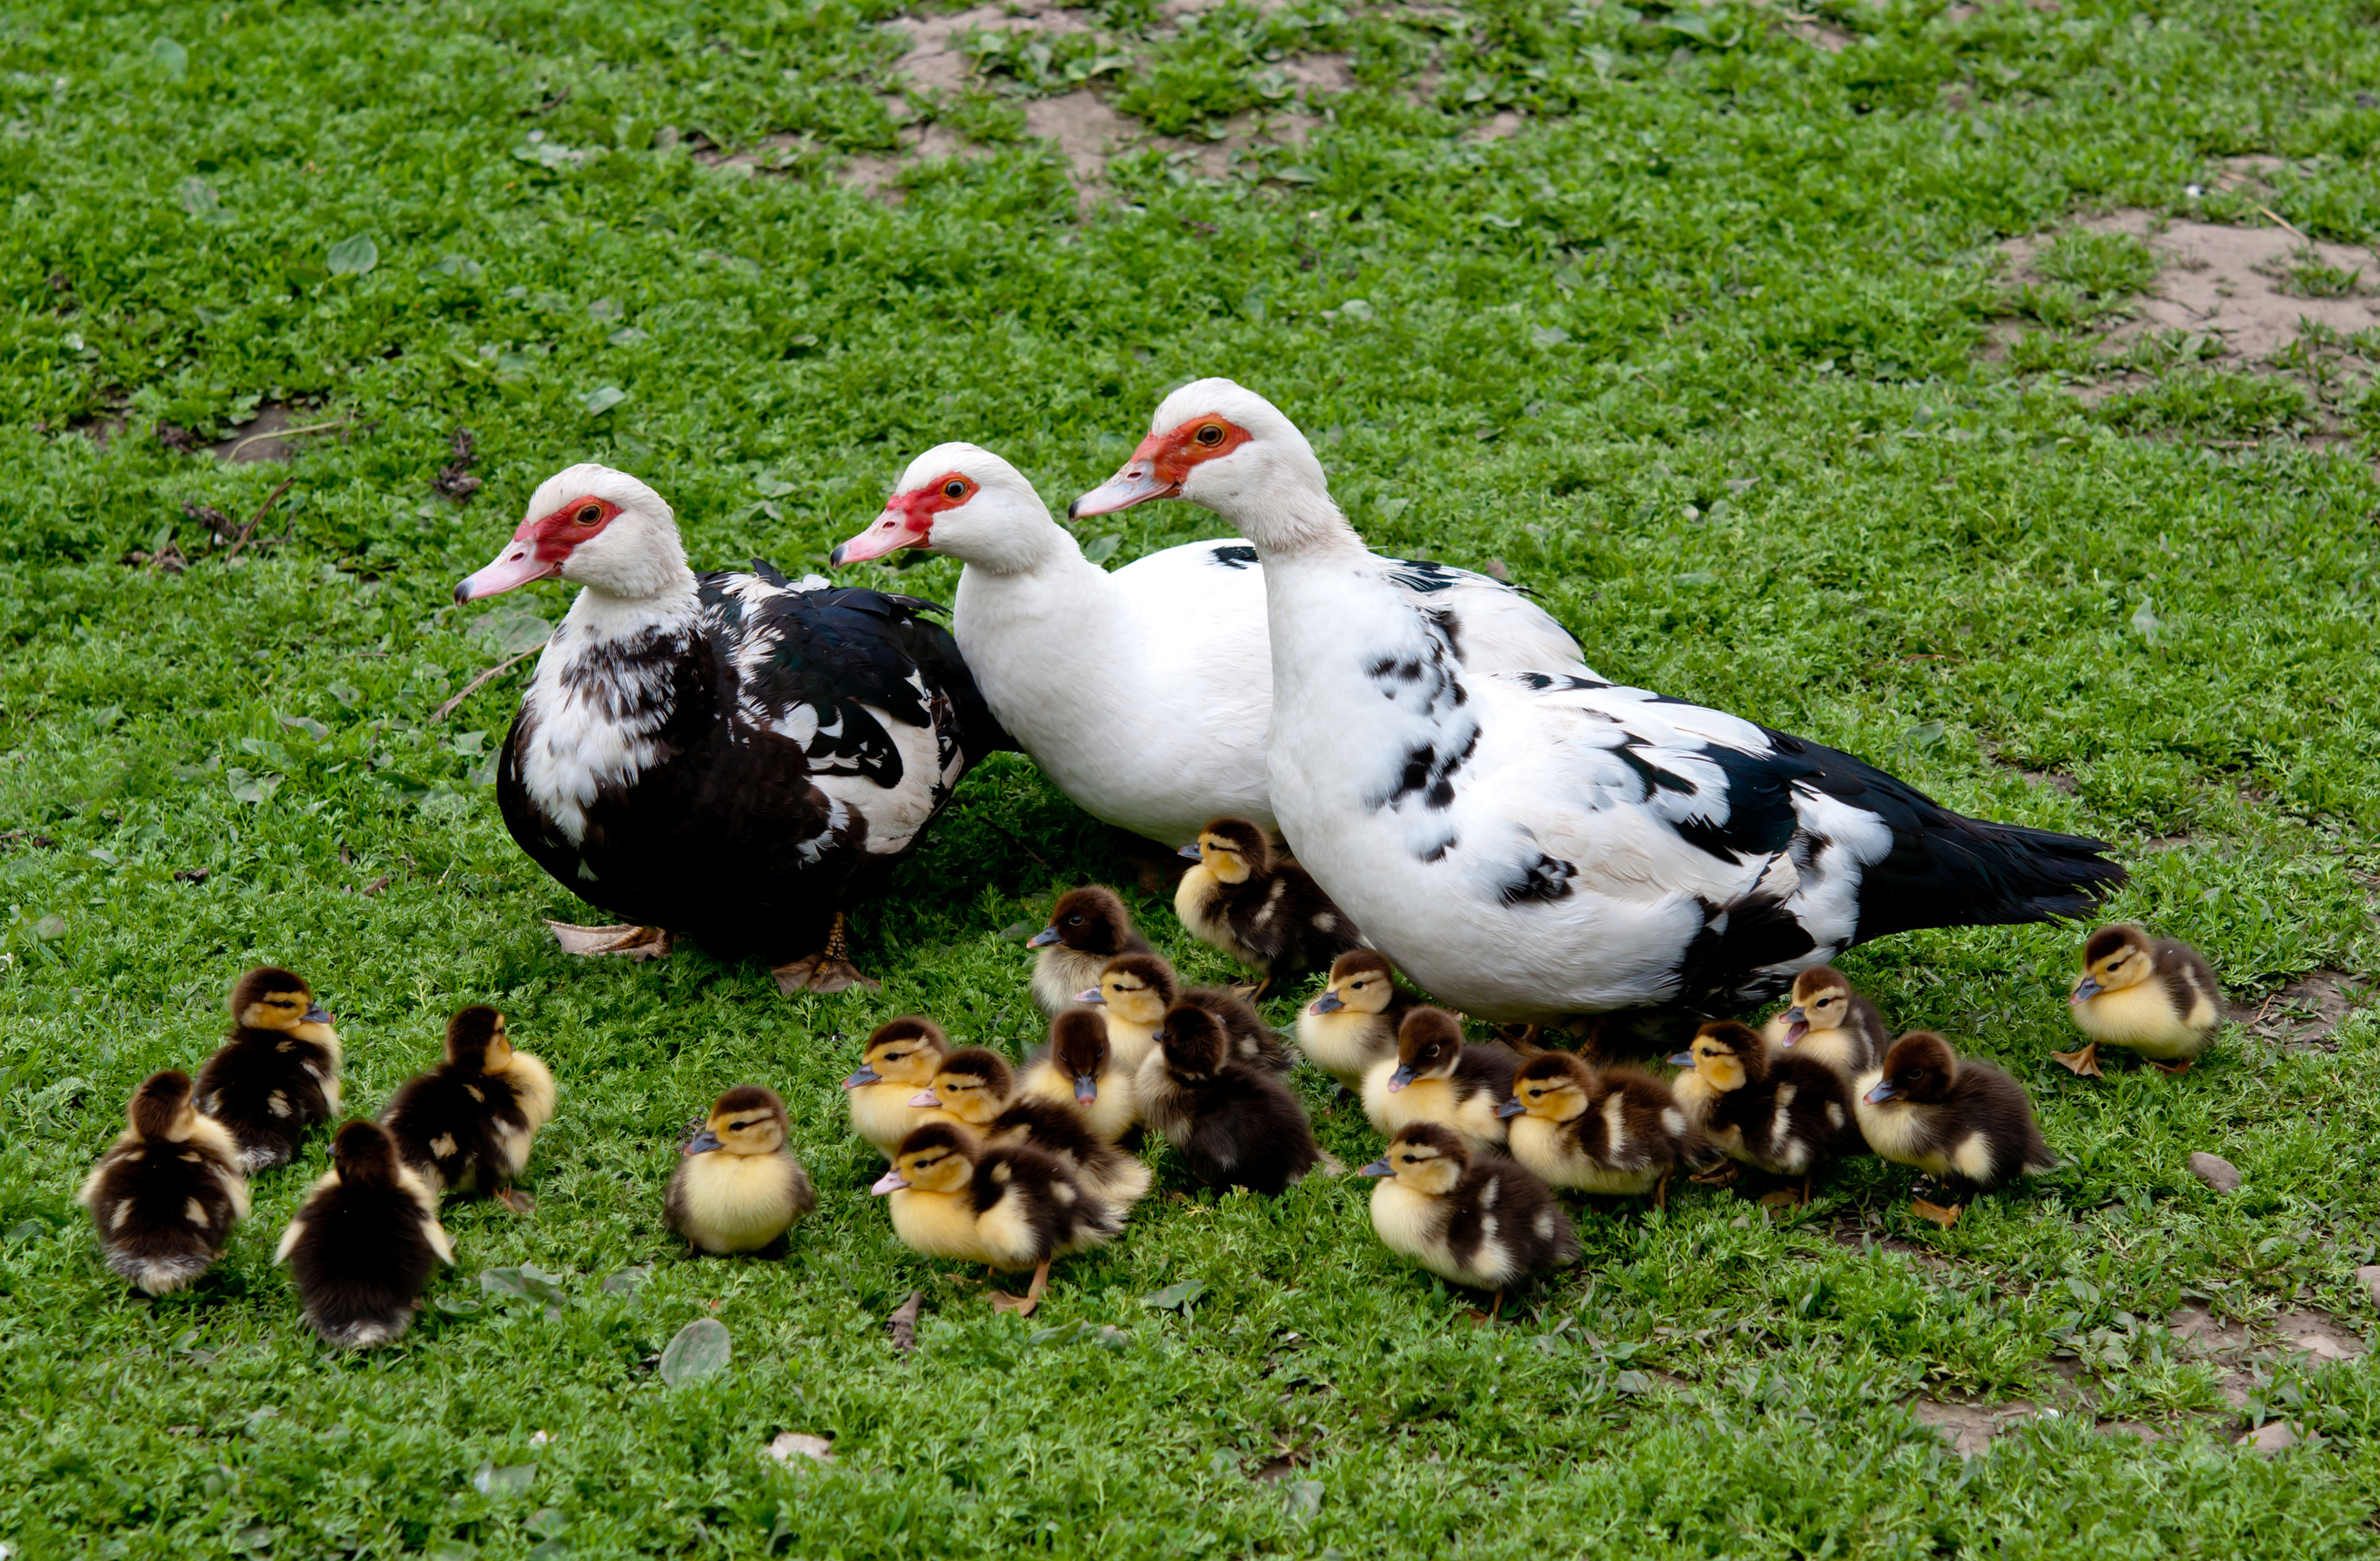 my wife had ducks when she was a little kid - muscovies.  they make great pets - they're friendly and loyal like dogs, they love attention and being pet - her favorite would wait for her to come home from school on a treestump by her house and would do a crazy stomping happydance when she saw my wife get off the bus.  there are a few downsides - they have cloacas, not sphincters, so they do not have the capacity to 'hold in' any waste - when they have to shit, it just happens right there no matter where they are or what they're doing.    they also get weird about their eggs - they will sit on their unfertilized eggs until they rot and they don't like it when you take them away, so they'll try to pick hiding spots further and further away to lay them, which can leave them vulnerable to predators and they have all the predators because  everything eats ducks.